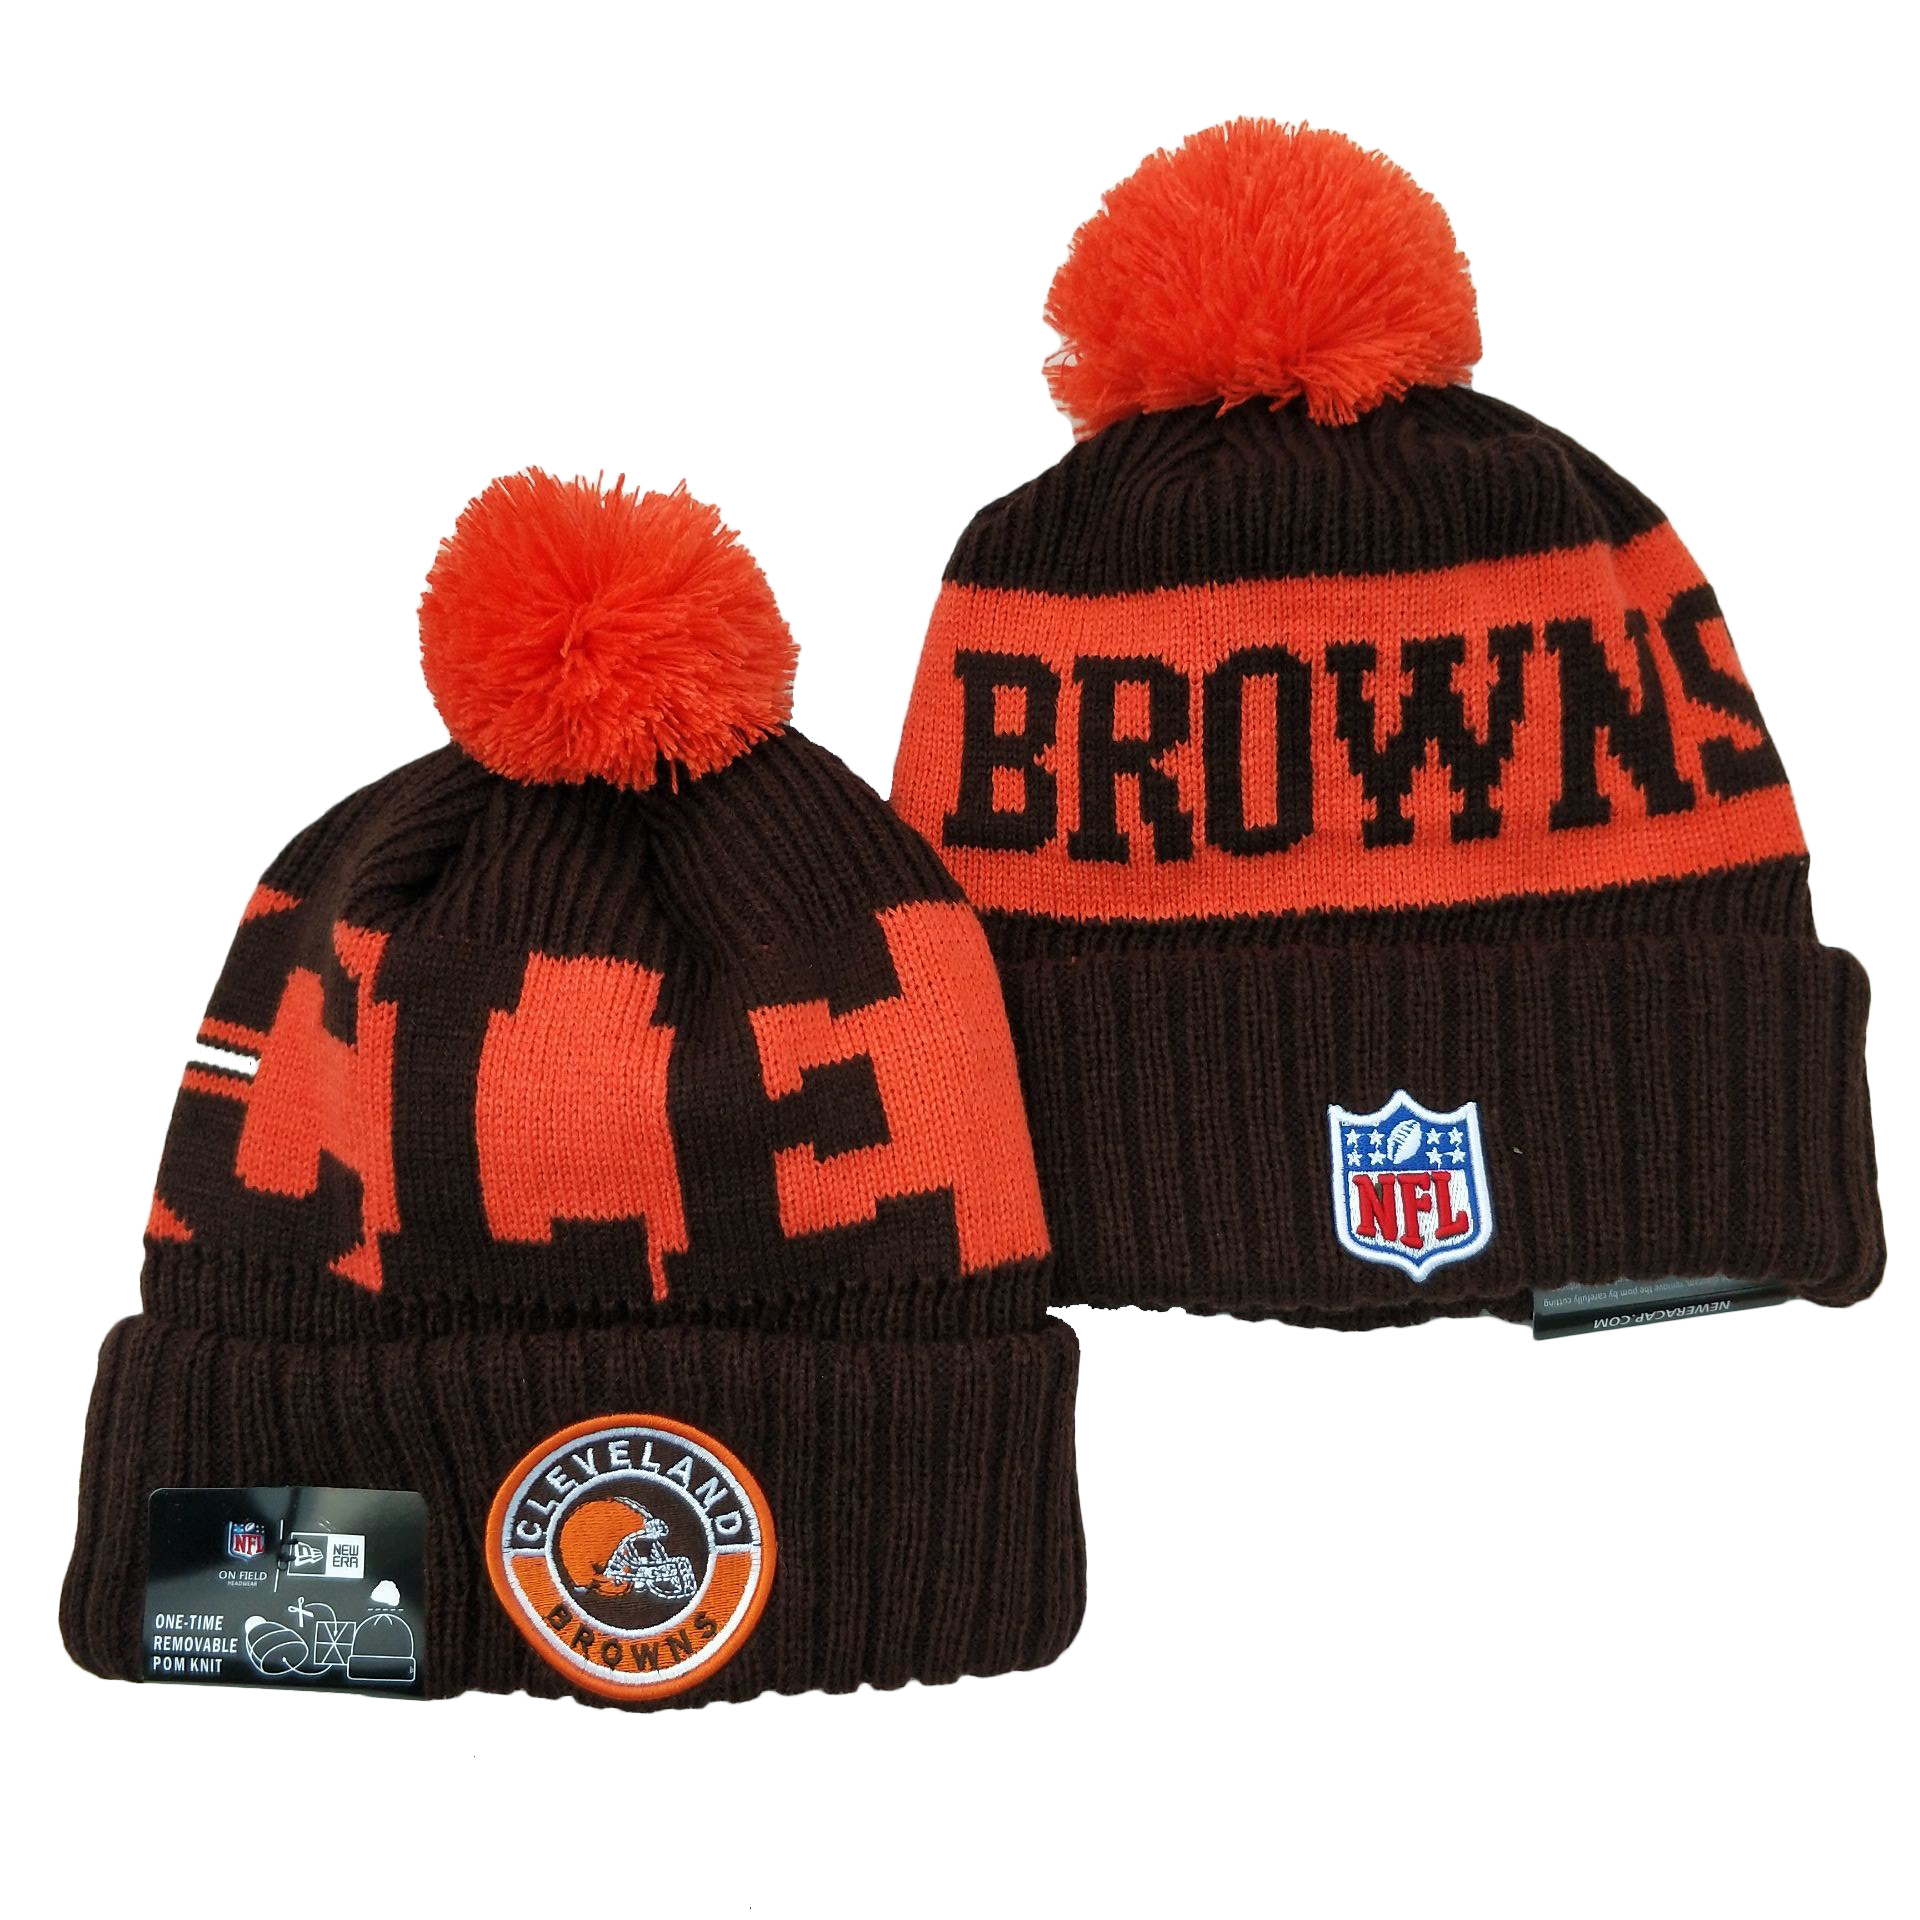 Cleveland Browns Knit Hats 049